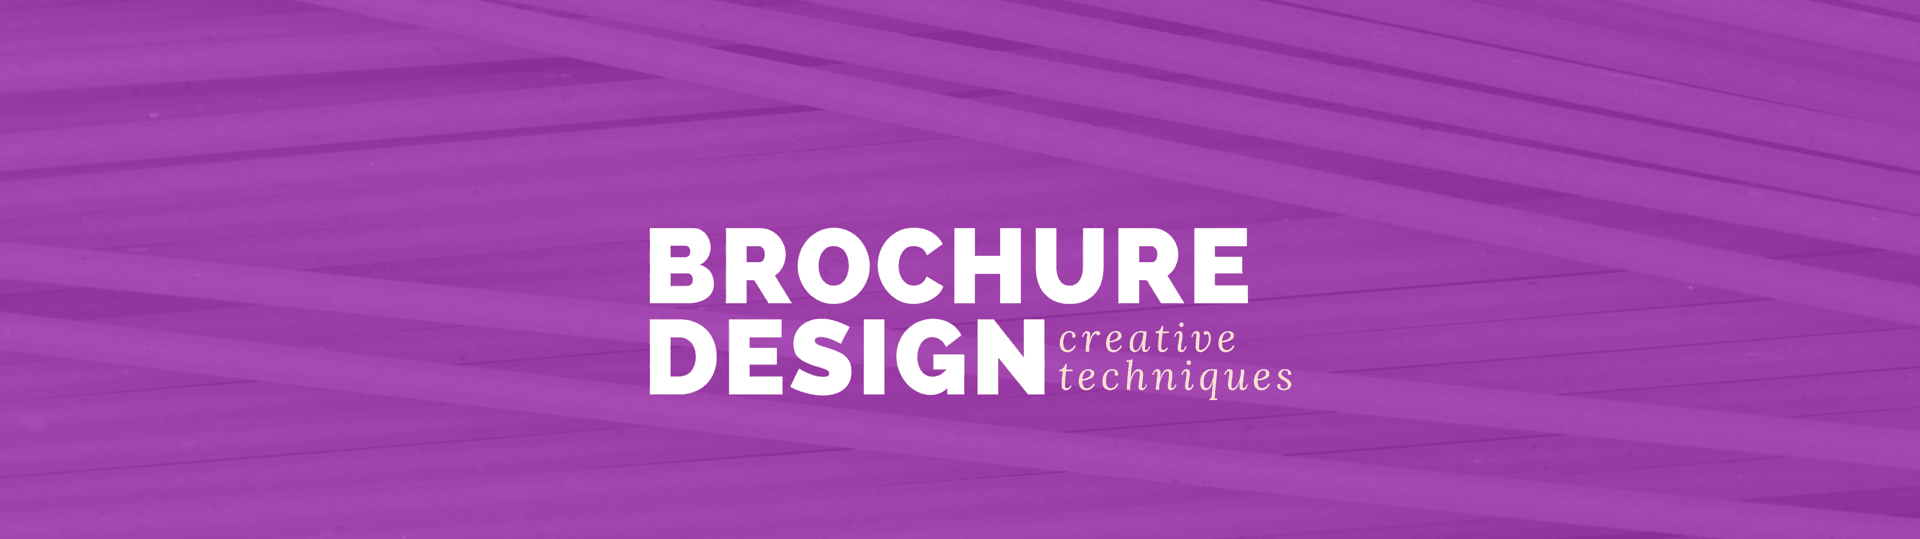 10 Ways to Make Your Brochure Effective